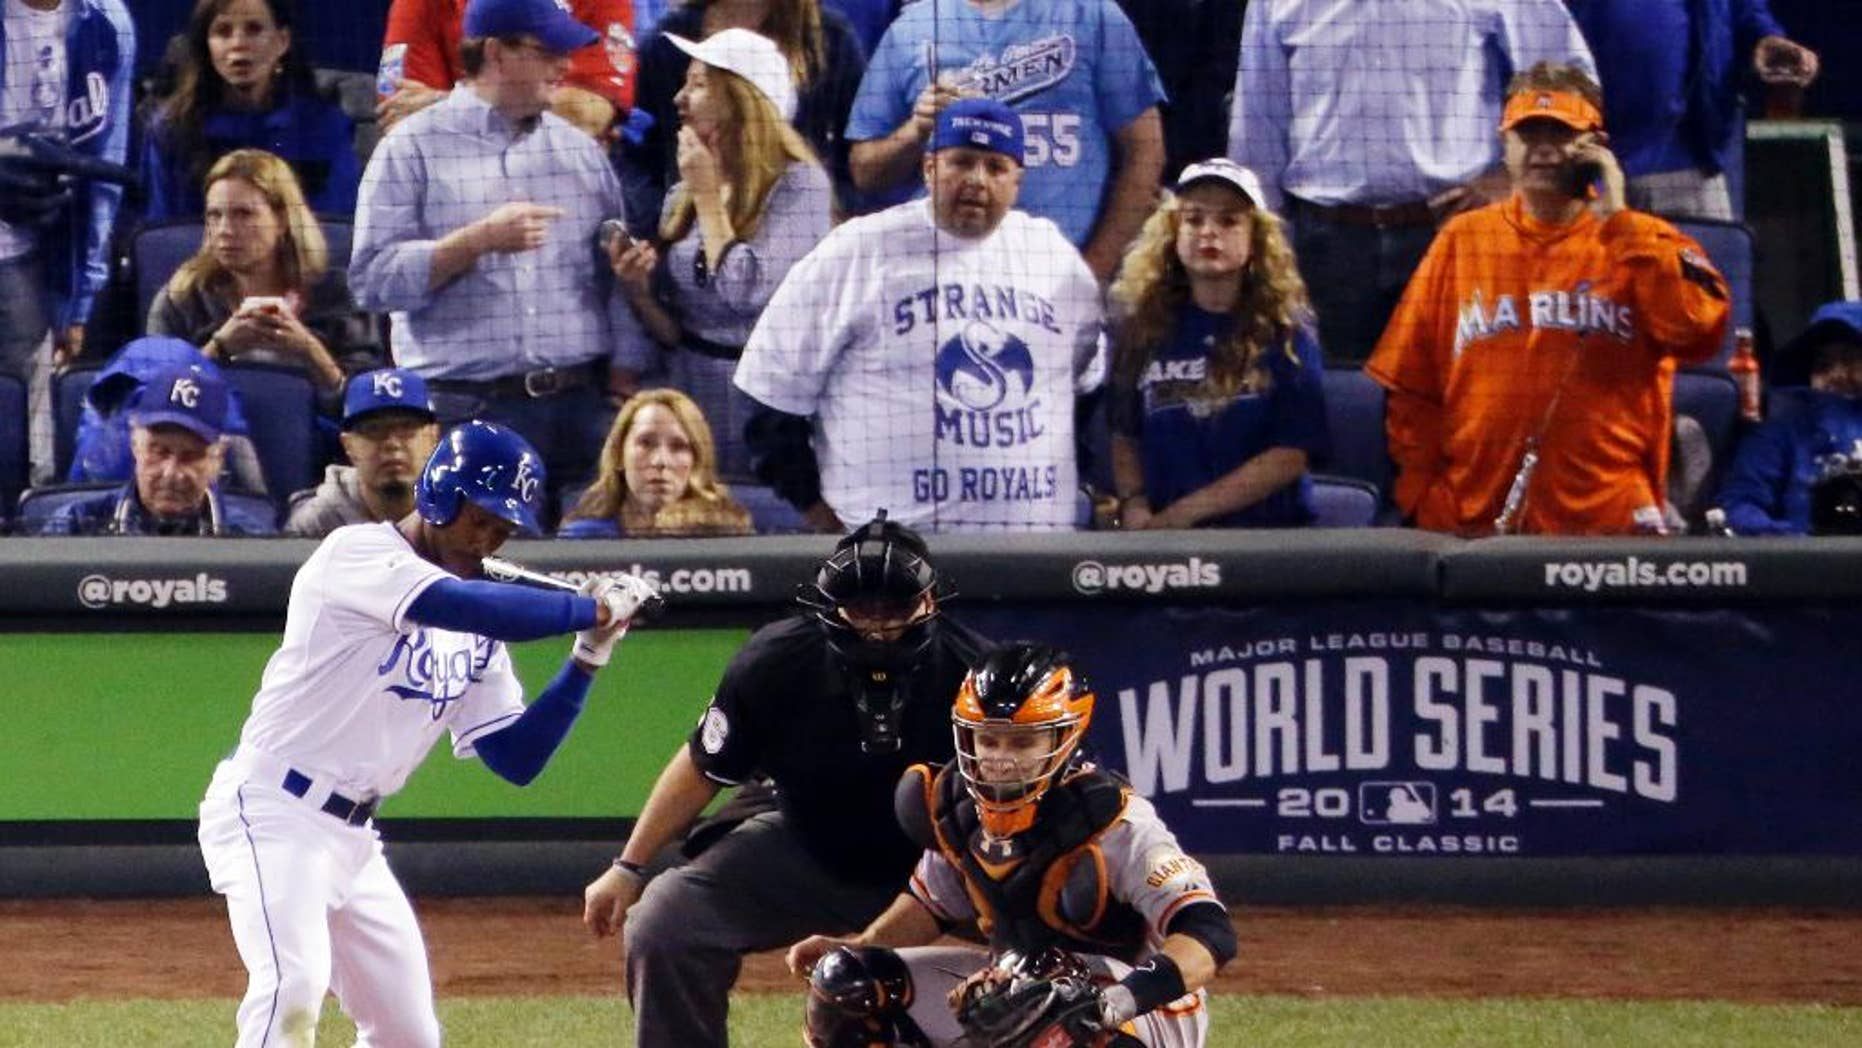 In this Wednesday, Oct. 22, 2014, photo, Miami Marlins fan Laurence Leavy, rear right, is shown wearing a bright orange Marlins jersey during Game 2 of baseball's World Series in Kansas City, Mo. Leavy's orange Marlins jersey made him easy to spot amid a sea of Kansas City Royals blue. He said a Royals official approached him offering to move him to the team owner's suite, but Leavy declined. (AP Photo/Charlie Riedel)